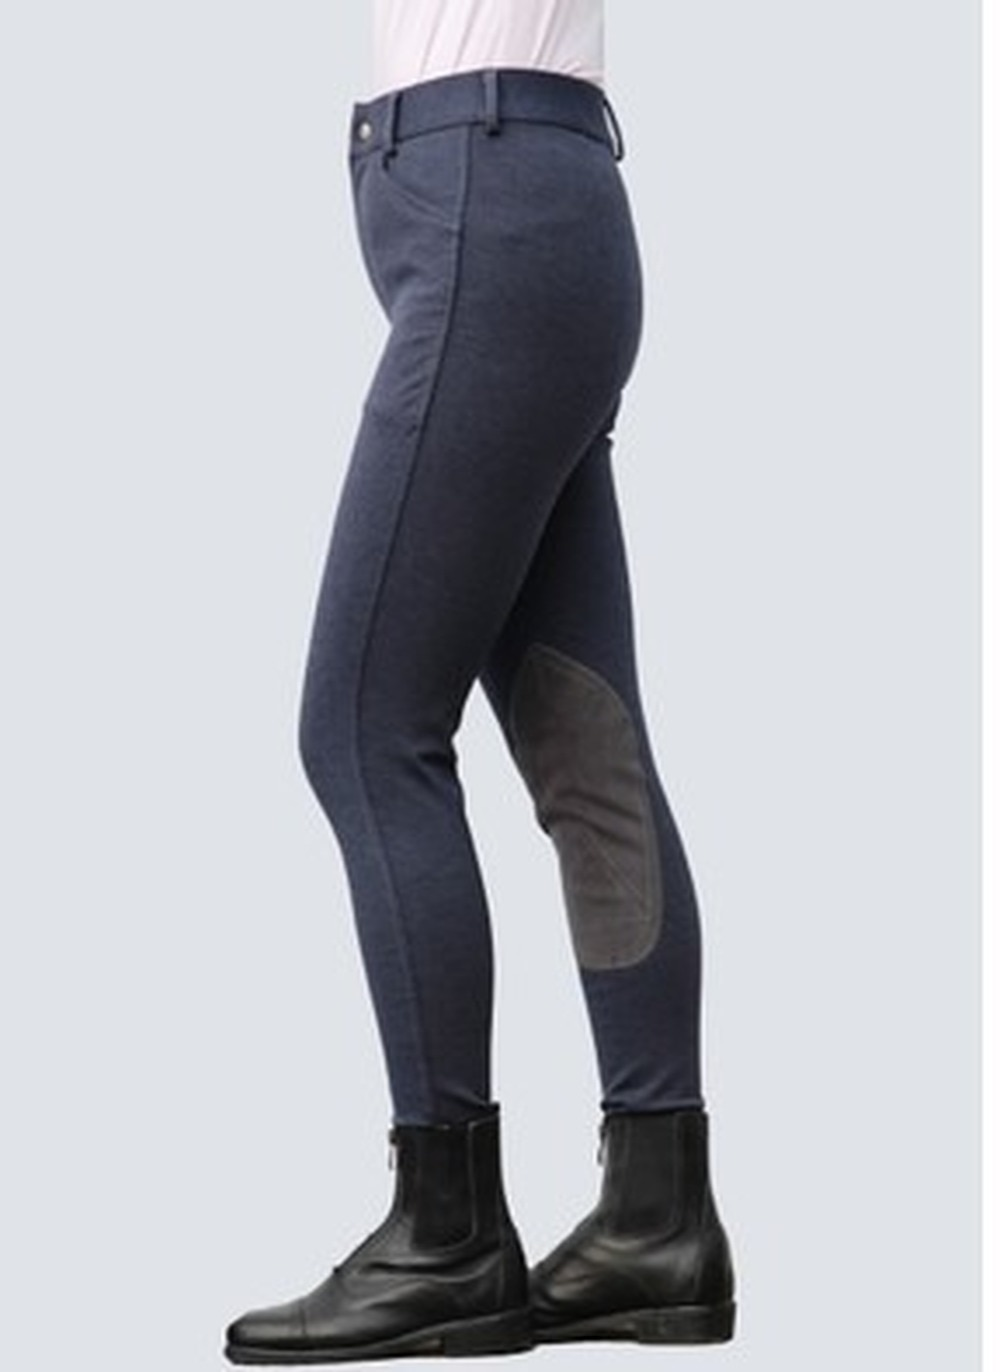 Equestrian Breeches Stretch Breeches Wearable Breathable Riding Pants High Waist Elastic Trousers Horse Riding Noble Pants